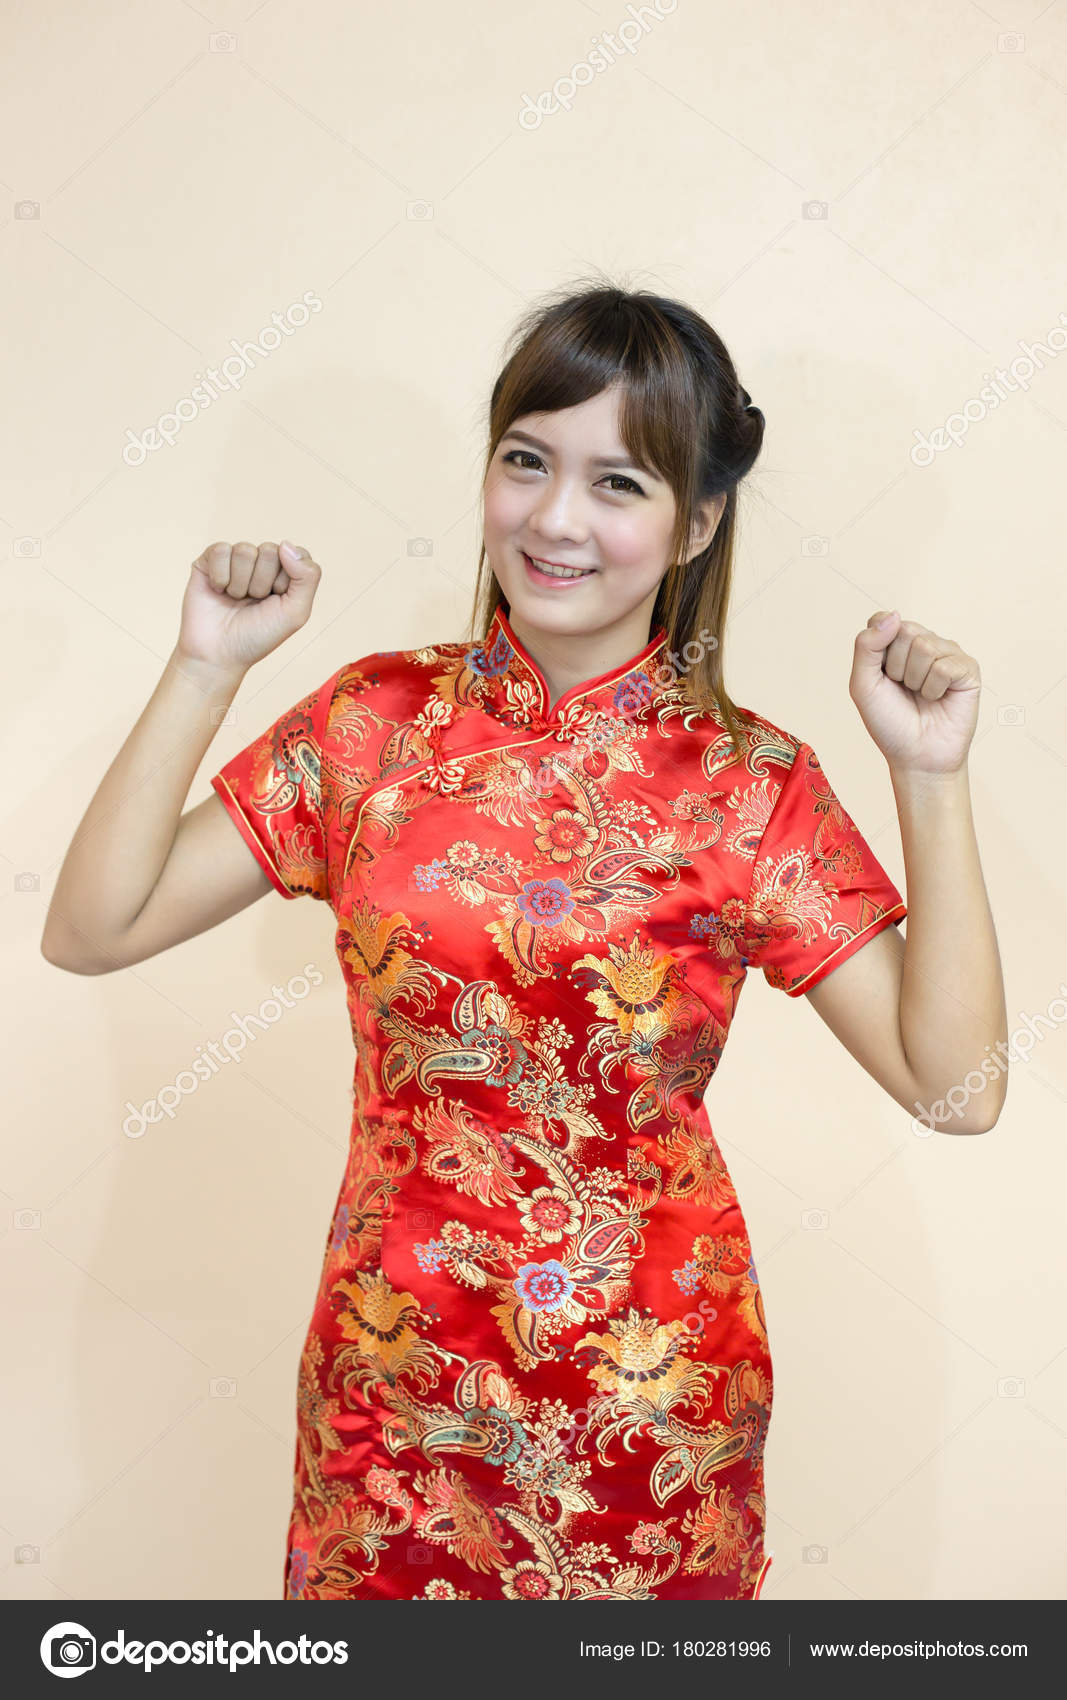 Asian woman greeting traditional chinese cheongsam hand lift welcome asian woman greeting in traditional chinese or cheongsam with hand lift welcome expression and lucky and gleeful in chinese new year celebration in red m4hsunfo